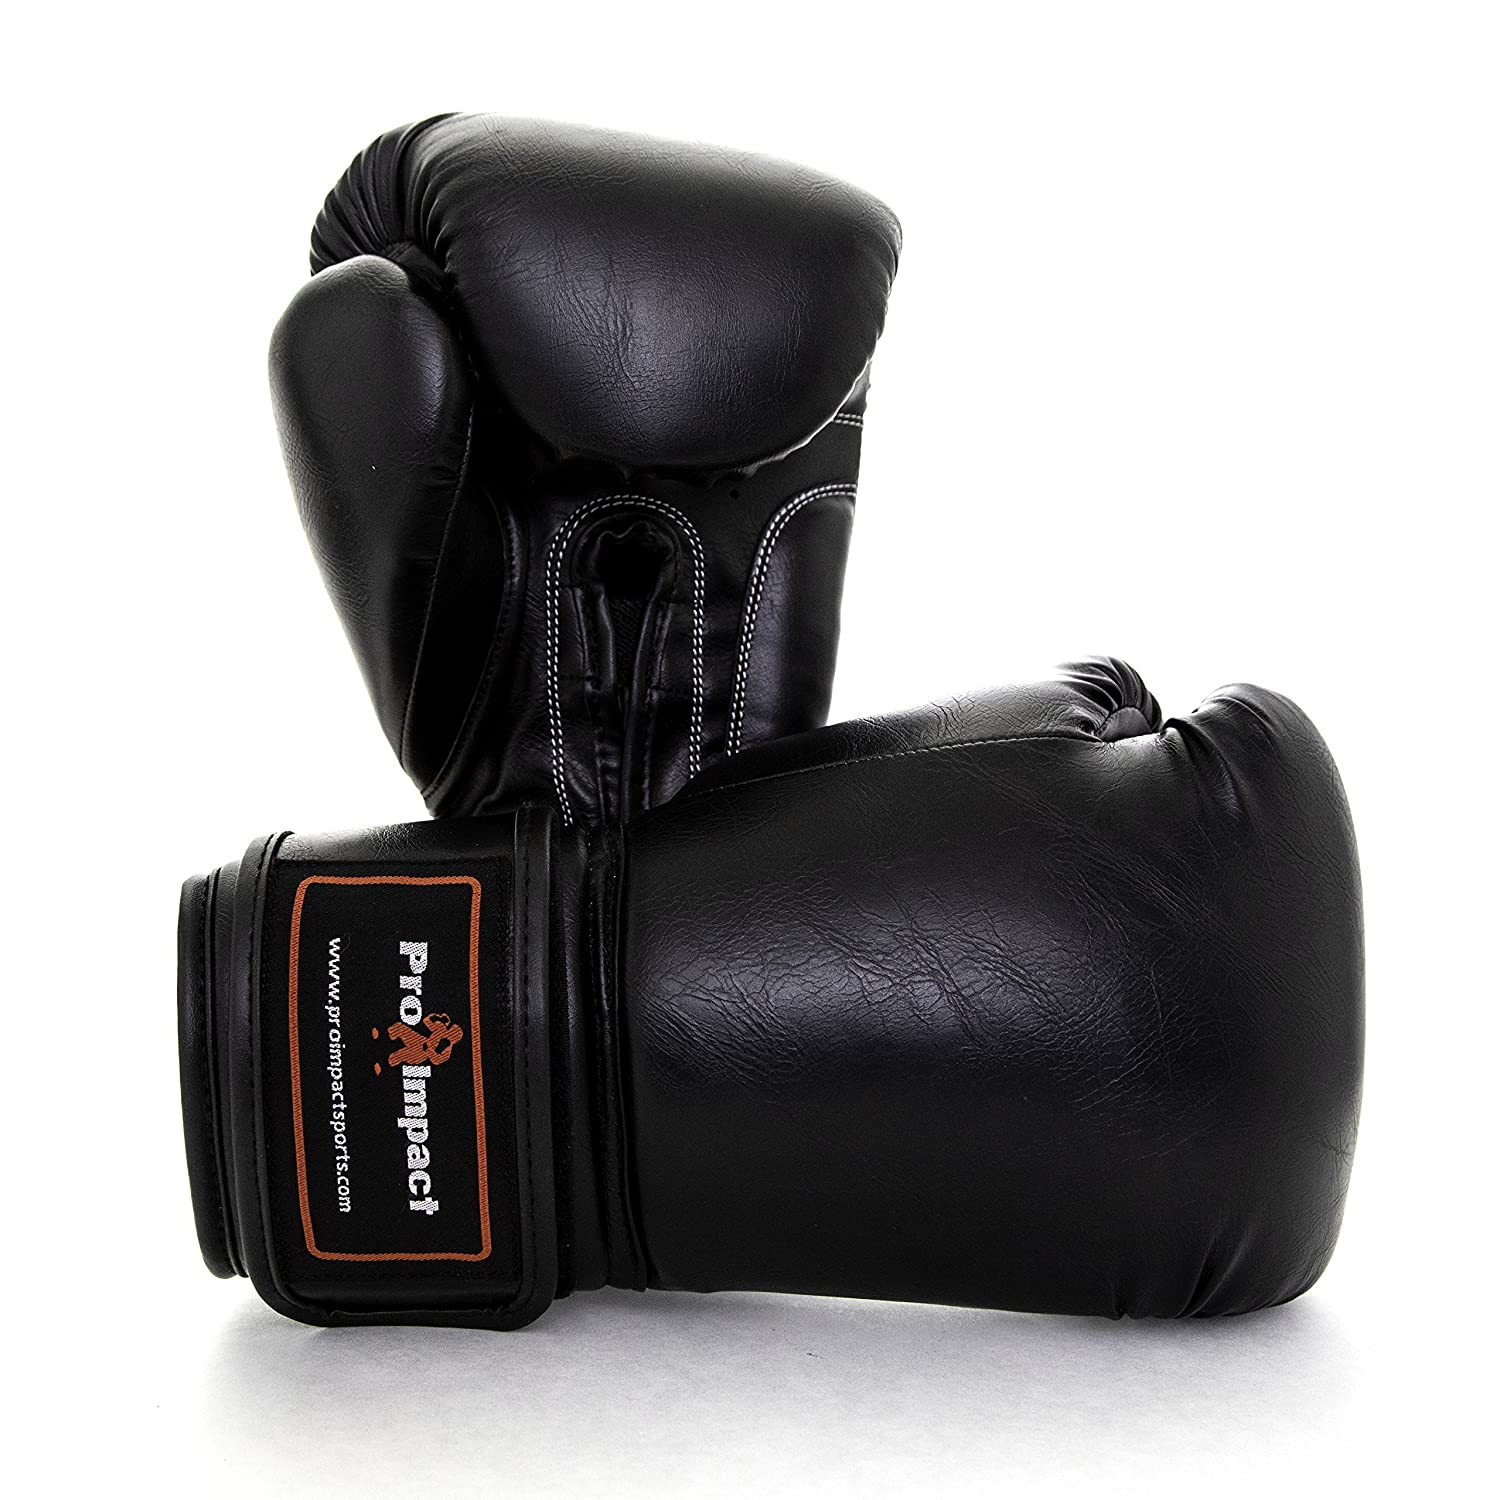 Durable Knuckle Protection w//Wrist Support for Boxing MMA Muay Thai or Fighting Sports Training//Sparring Use Pro Impact Boxing Gloves Black